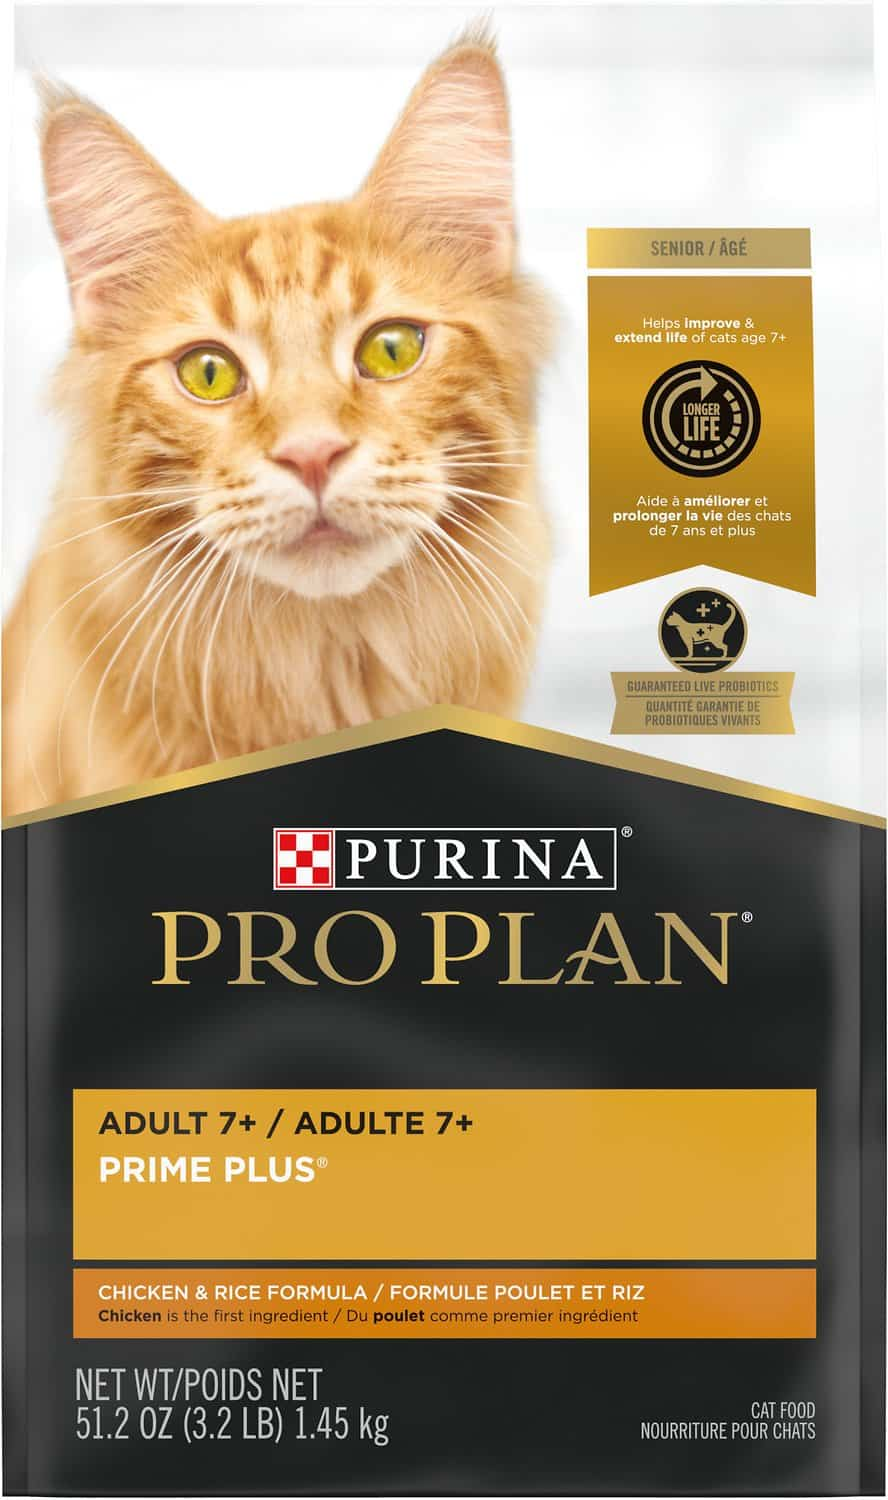 Purina Pro Plan Prime Plus Adult 7+ Chicken & Rice Formula Dry Cat Food   Chewy